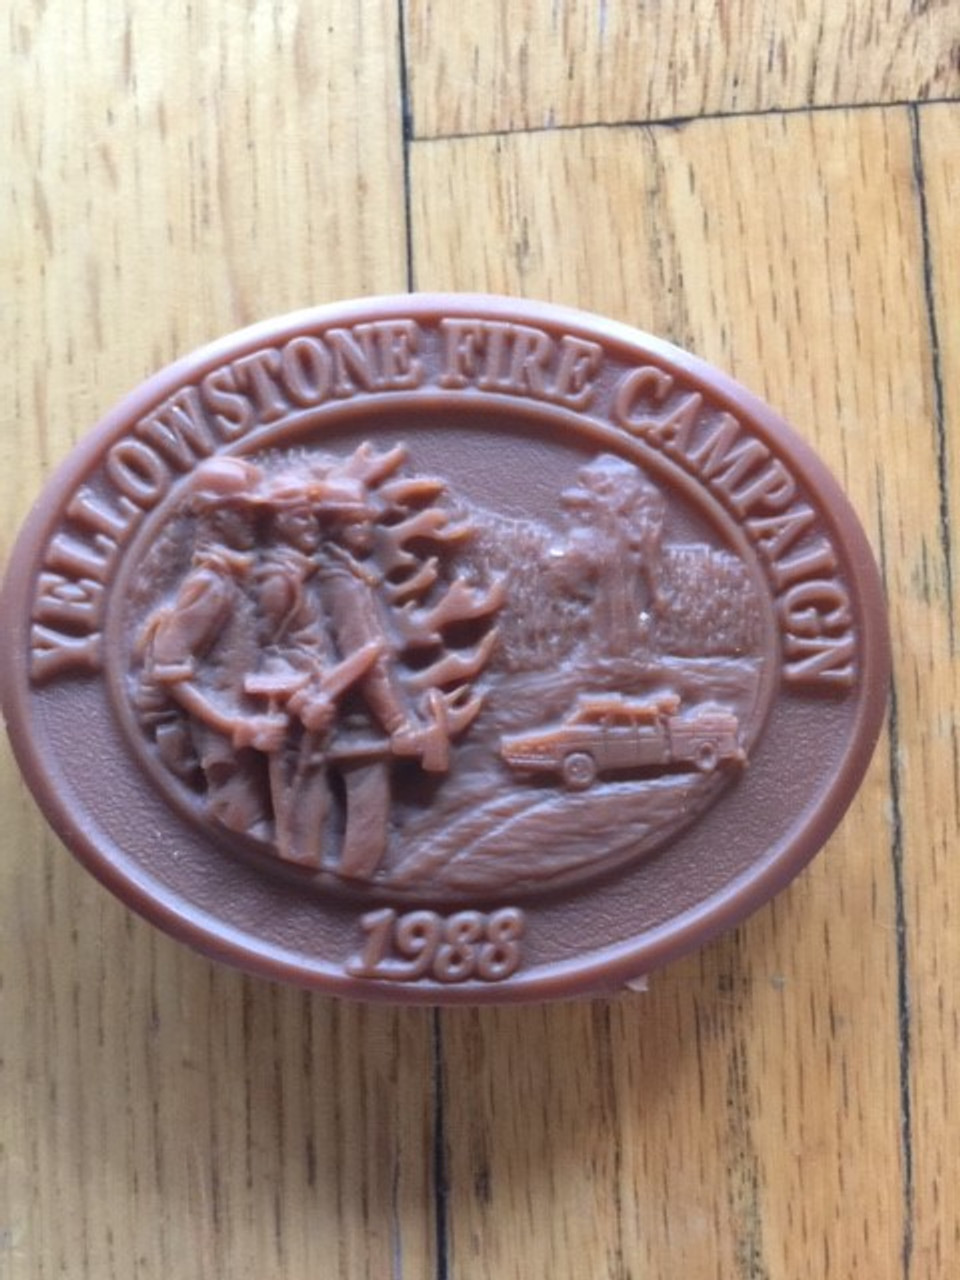 Yellowstone Fire Campaign 1988 Buckle